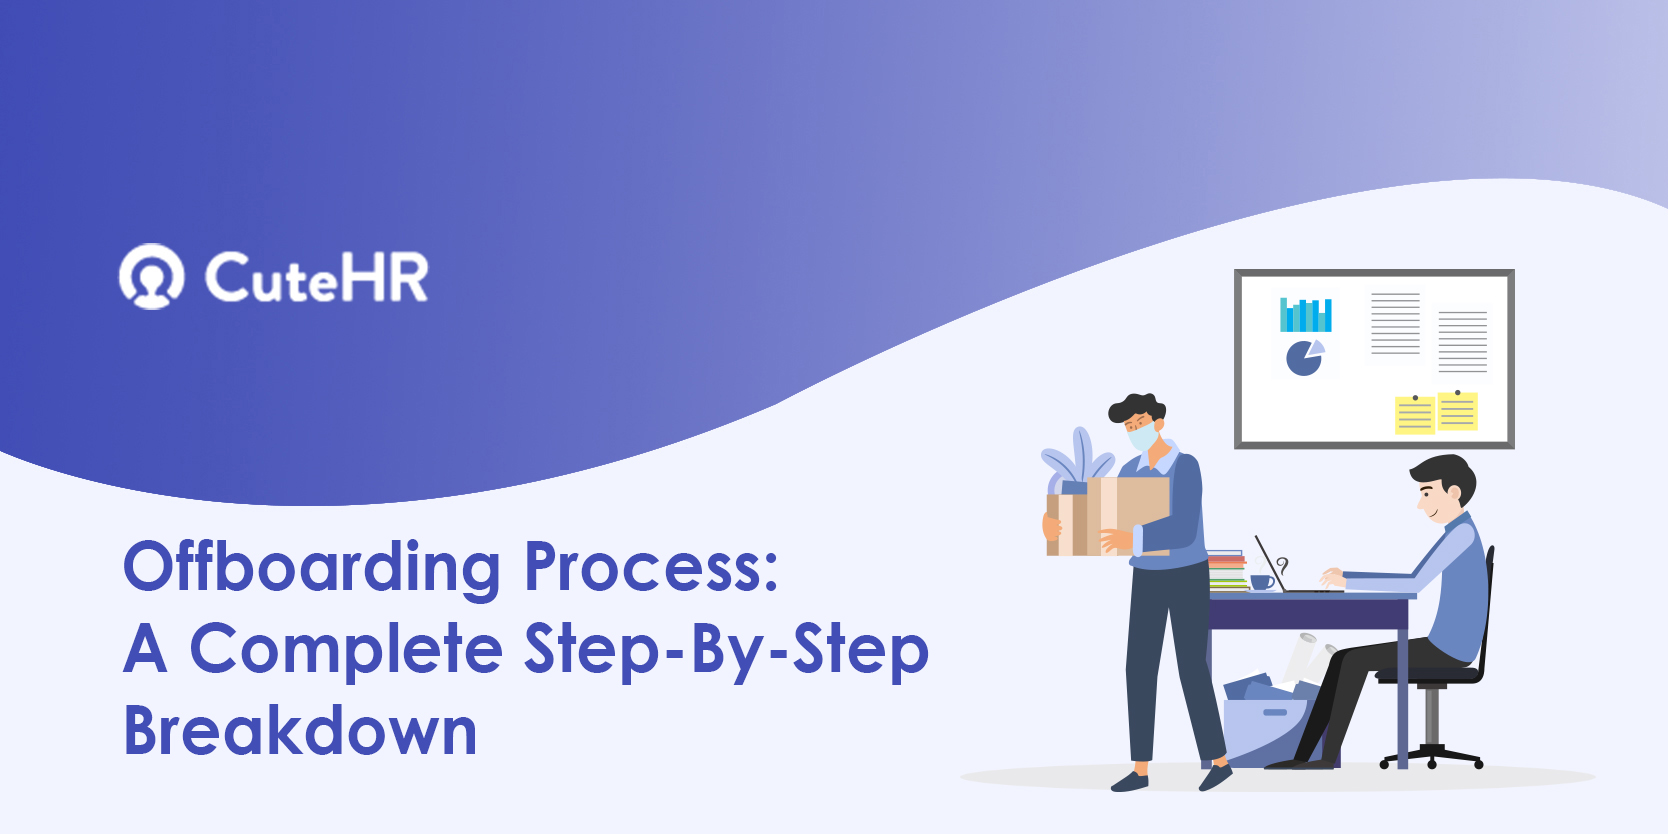 Offboarding Process